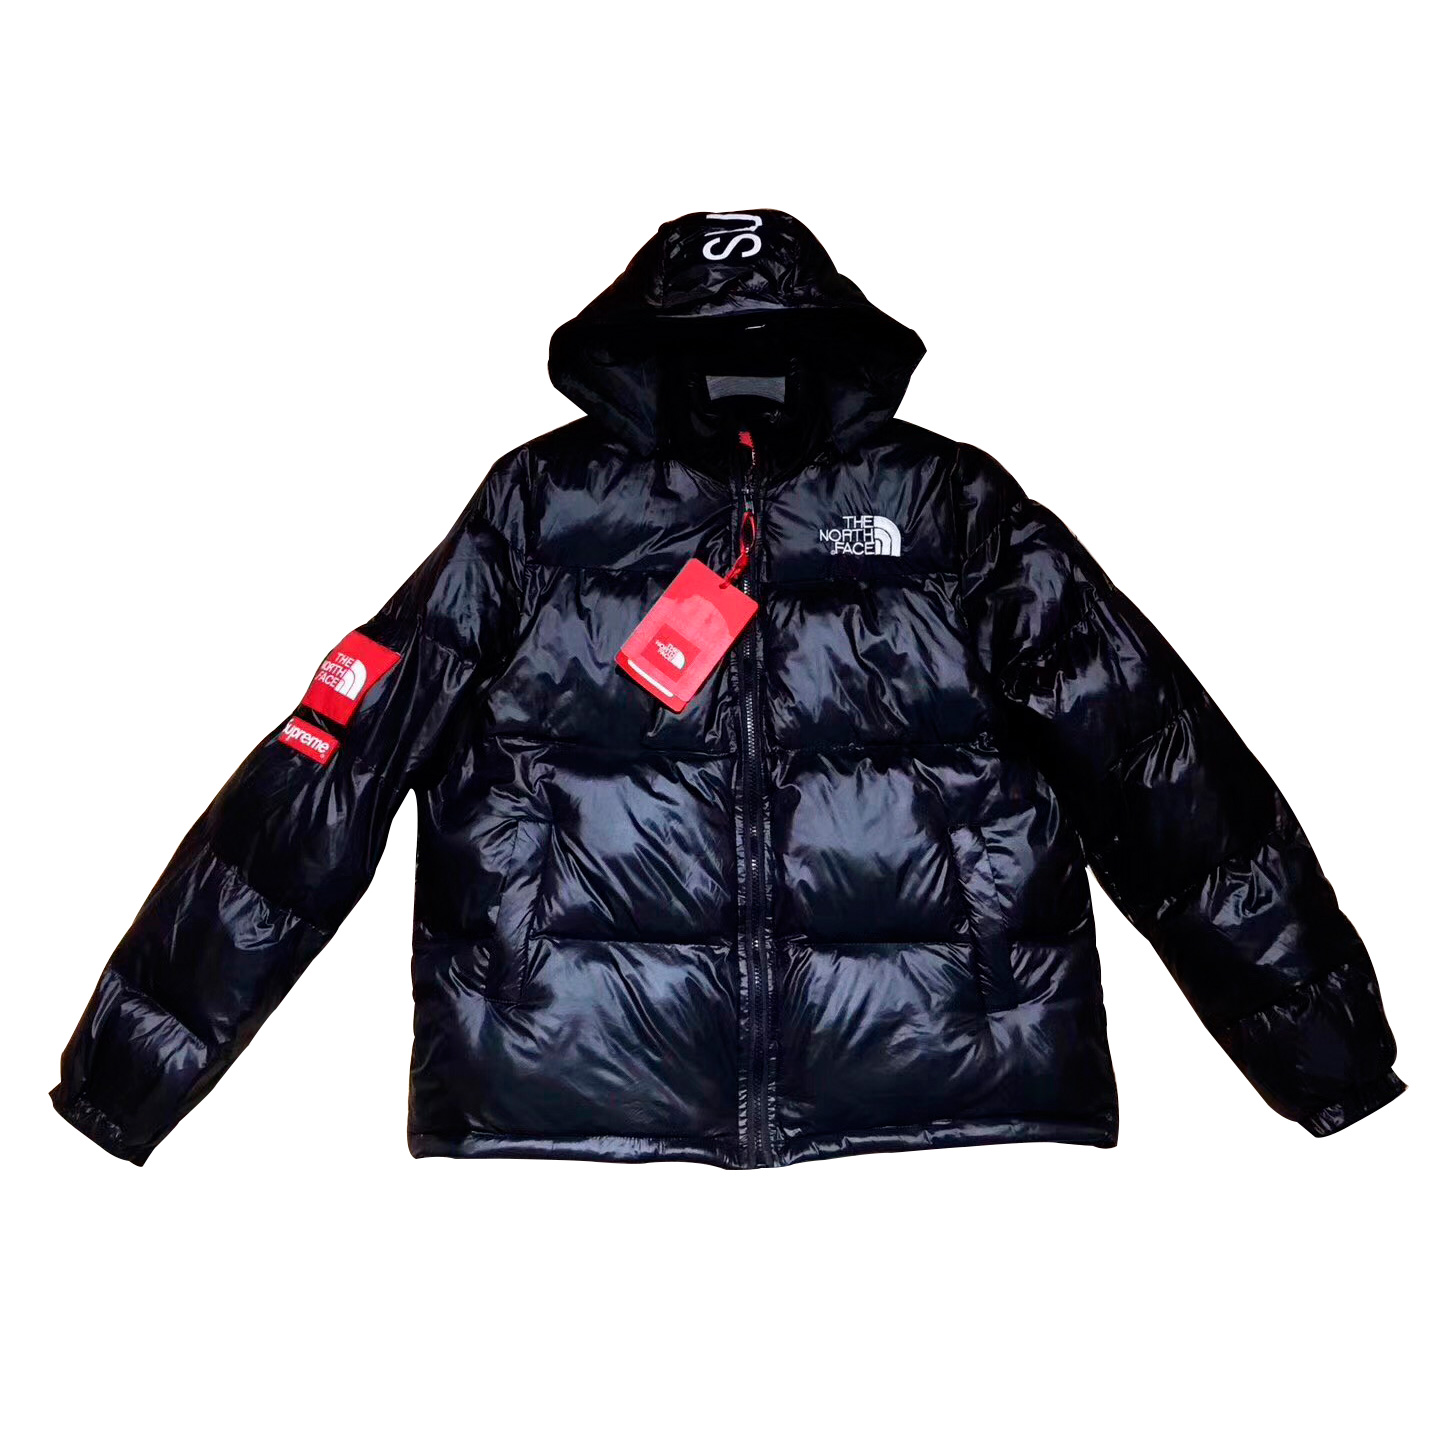 Supreme x The North Face Down Jacket Black